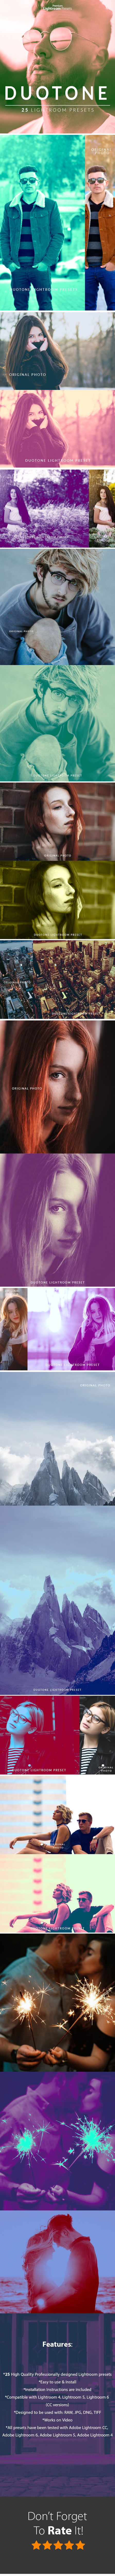 GraphicRiver Duotone Lightroom Presets For Lightroom 4 5 6 CC 20815203